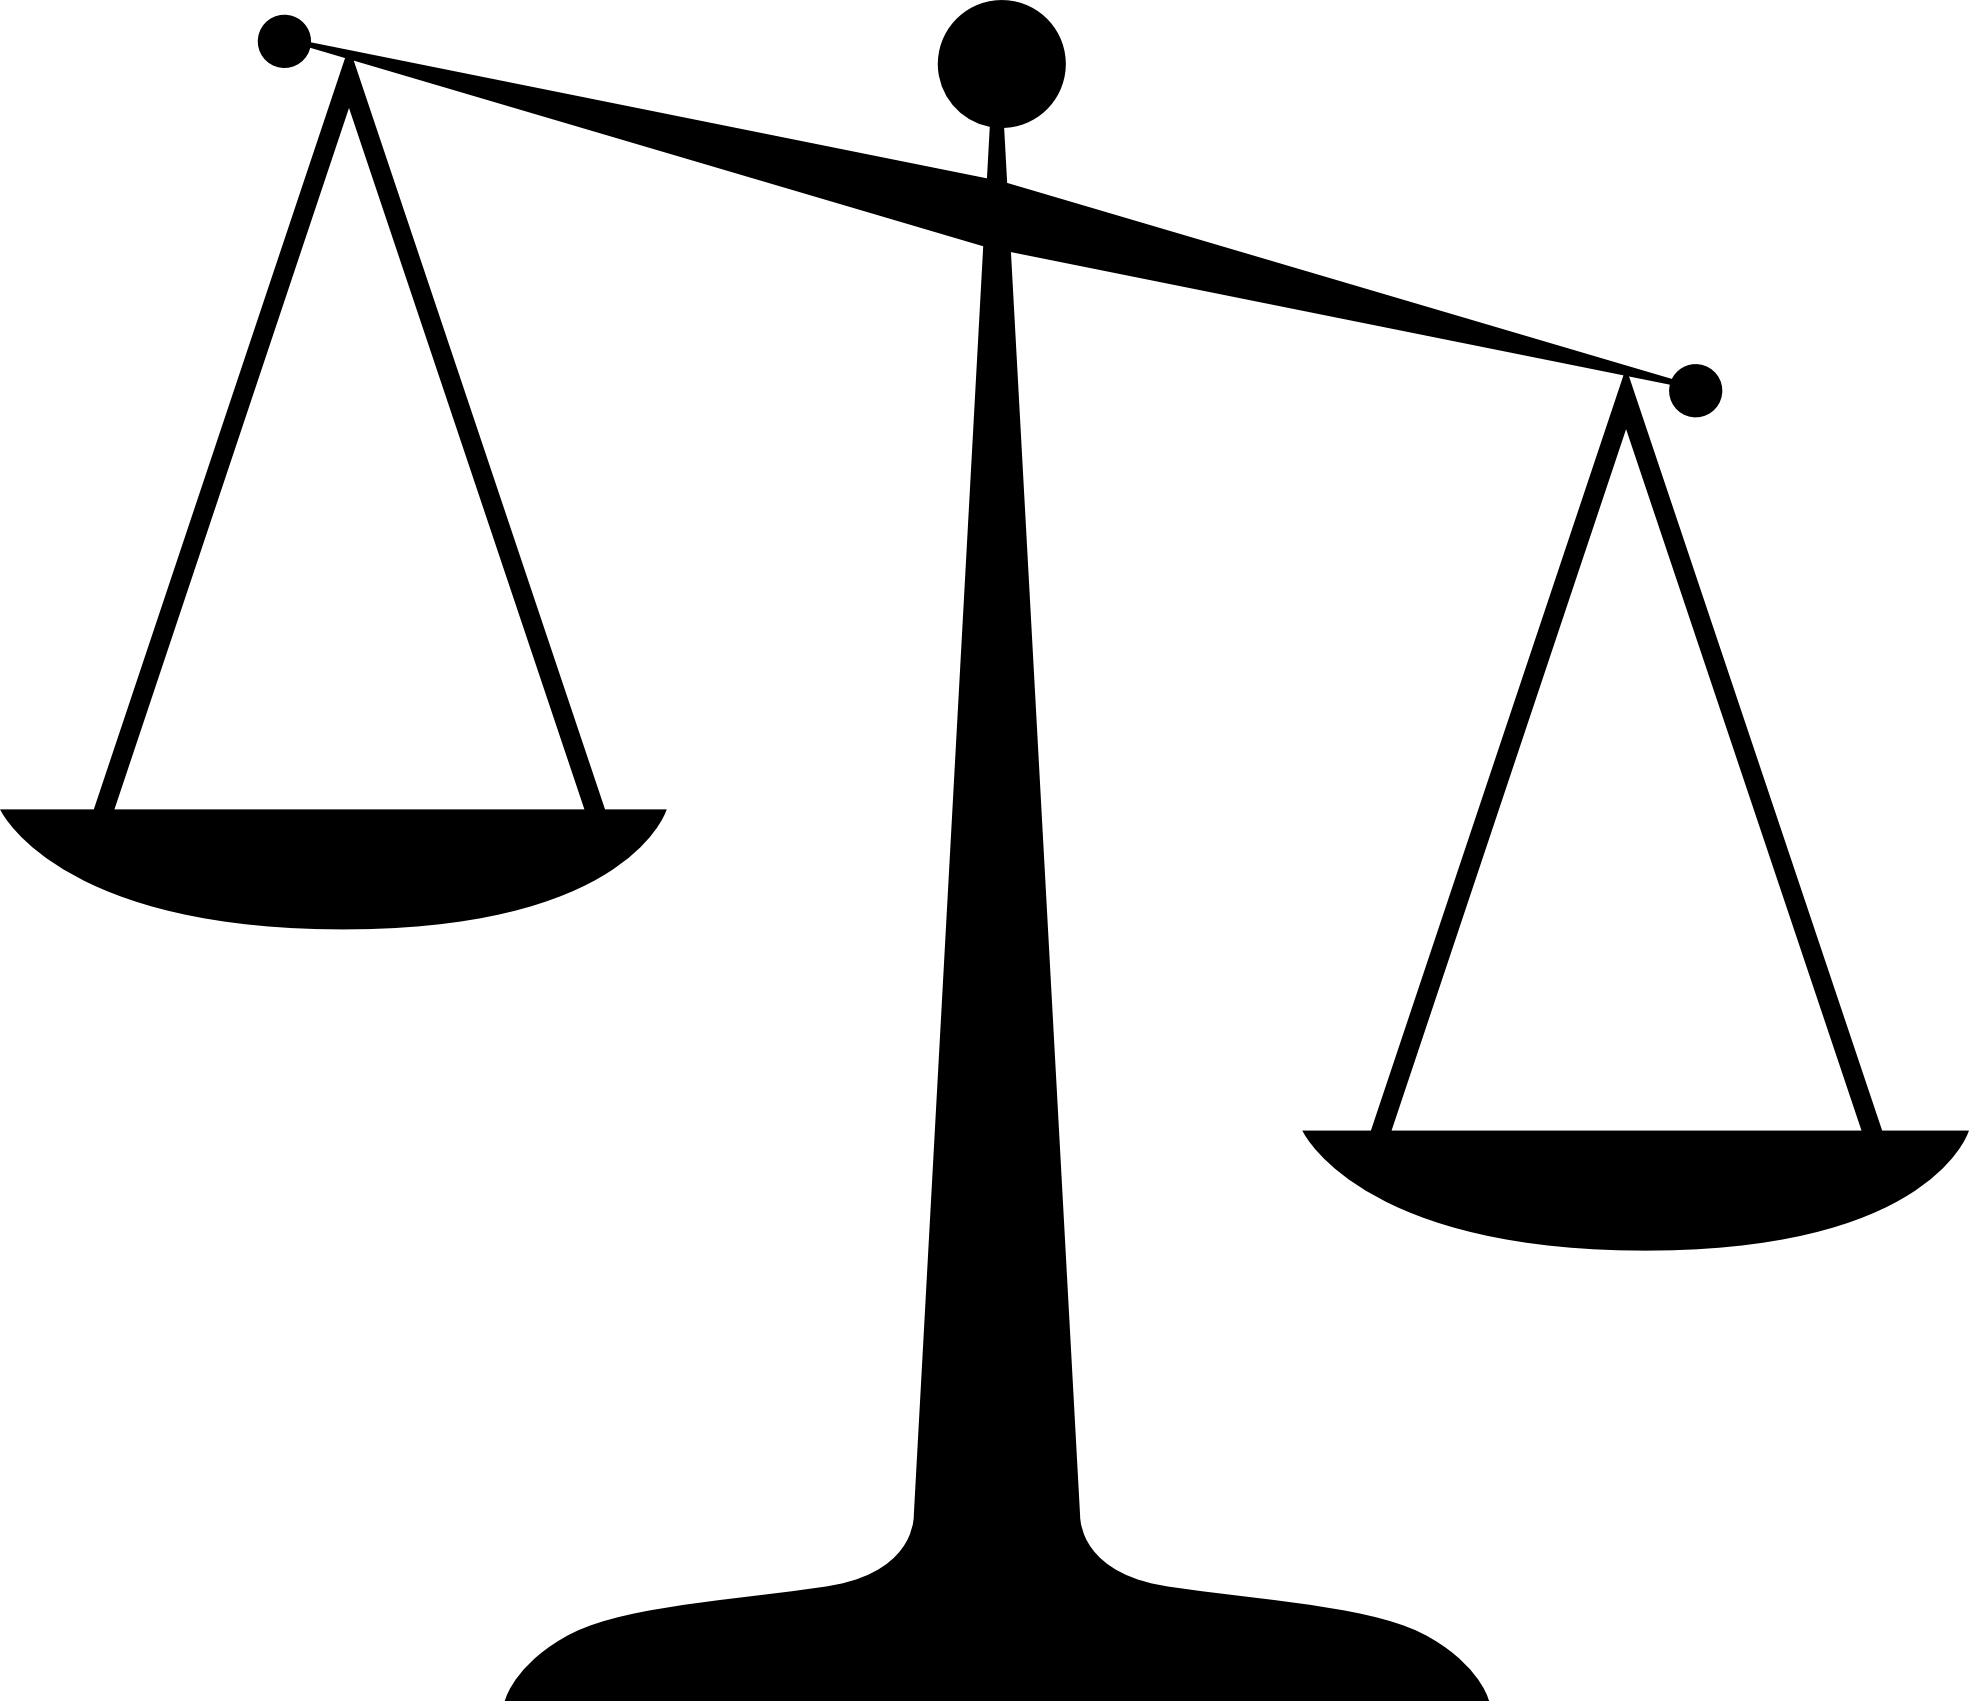 Library to co-sponsor Unequal Justice panel on 2/28